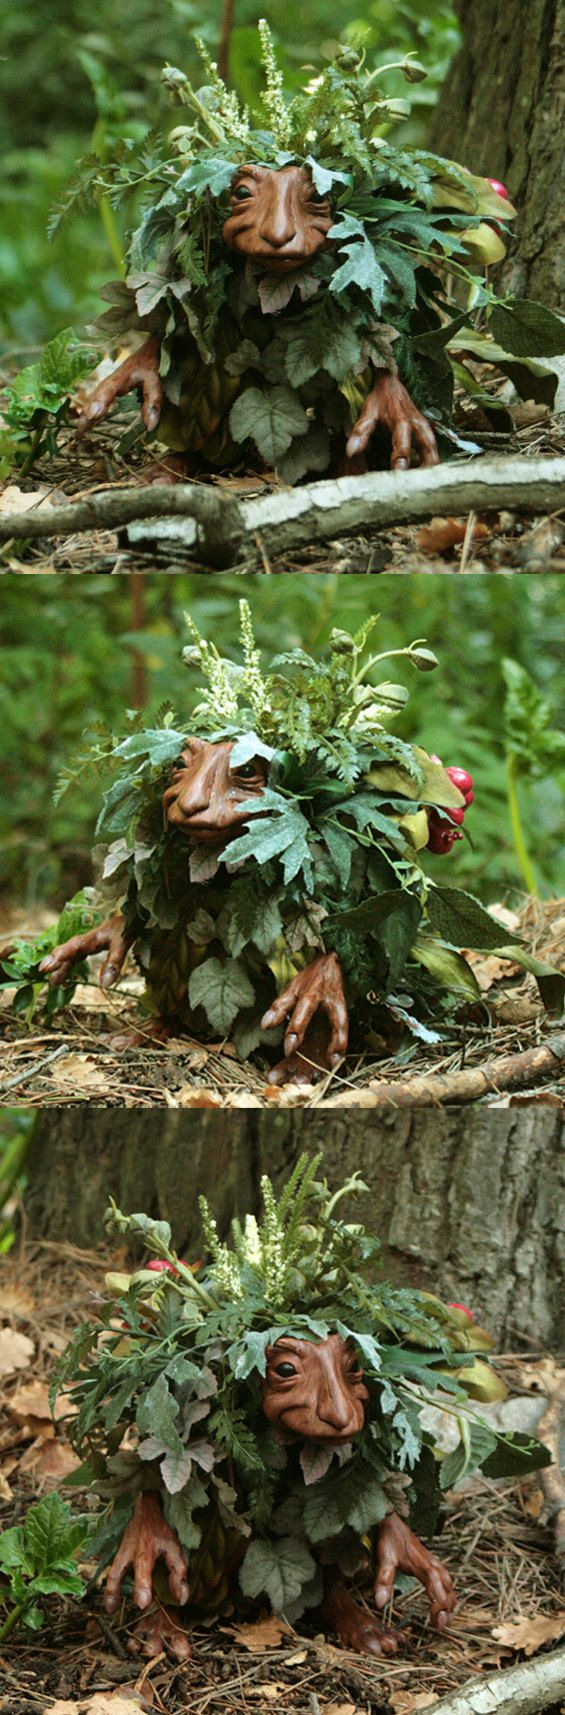 Trenti handmade Ooak creature fairy faerie goblin by FuegoFatuo--this is the little creature who hides in the trees, just out of Skyler's line of vision. So he thinks. She always sees him out of the corner of her eye....